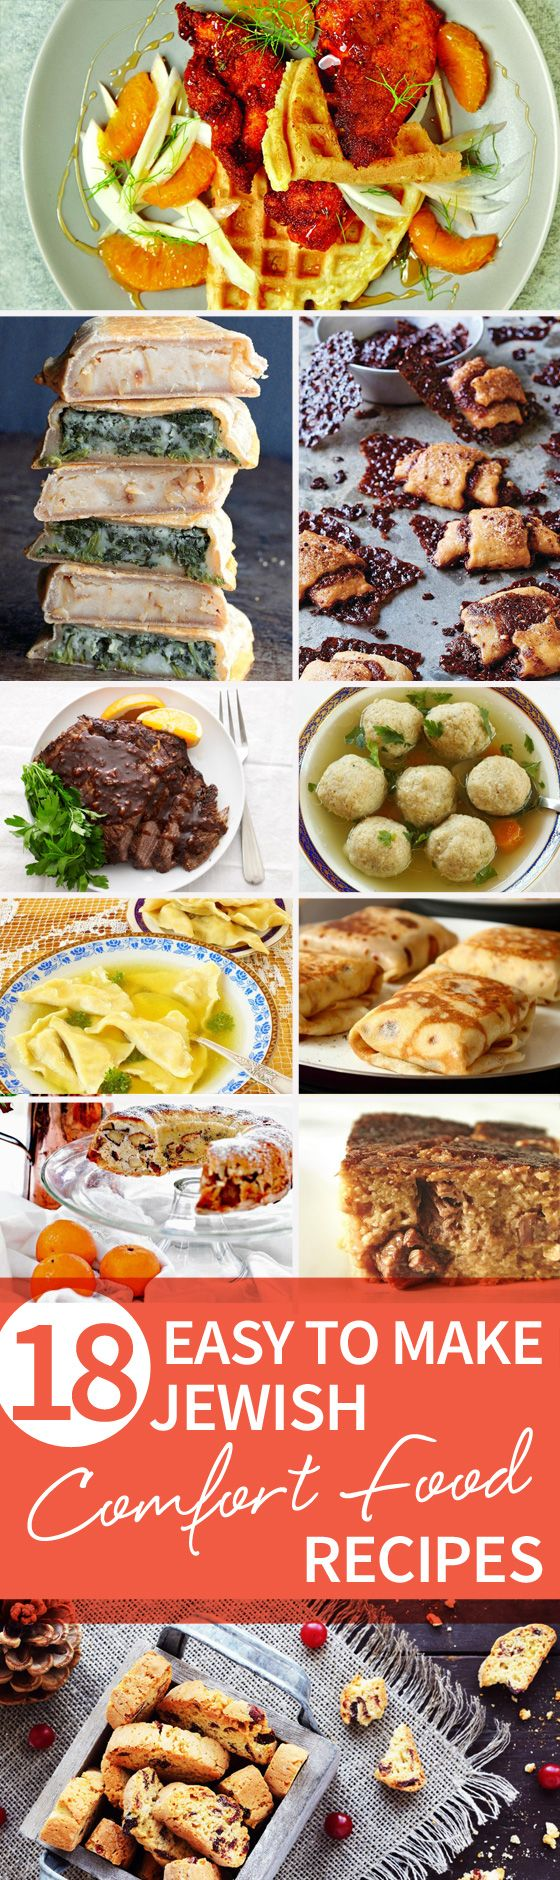 Find 18 of the BEST Jewish comfort foods of all time right here! Follow along with our 18 Easy to Make Jewish Comfort Food Recipes article for your next meal! http://www.joyofkosher.com/2016/12/18-easy-to-make-jewish-comfort-food-recipes/